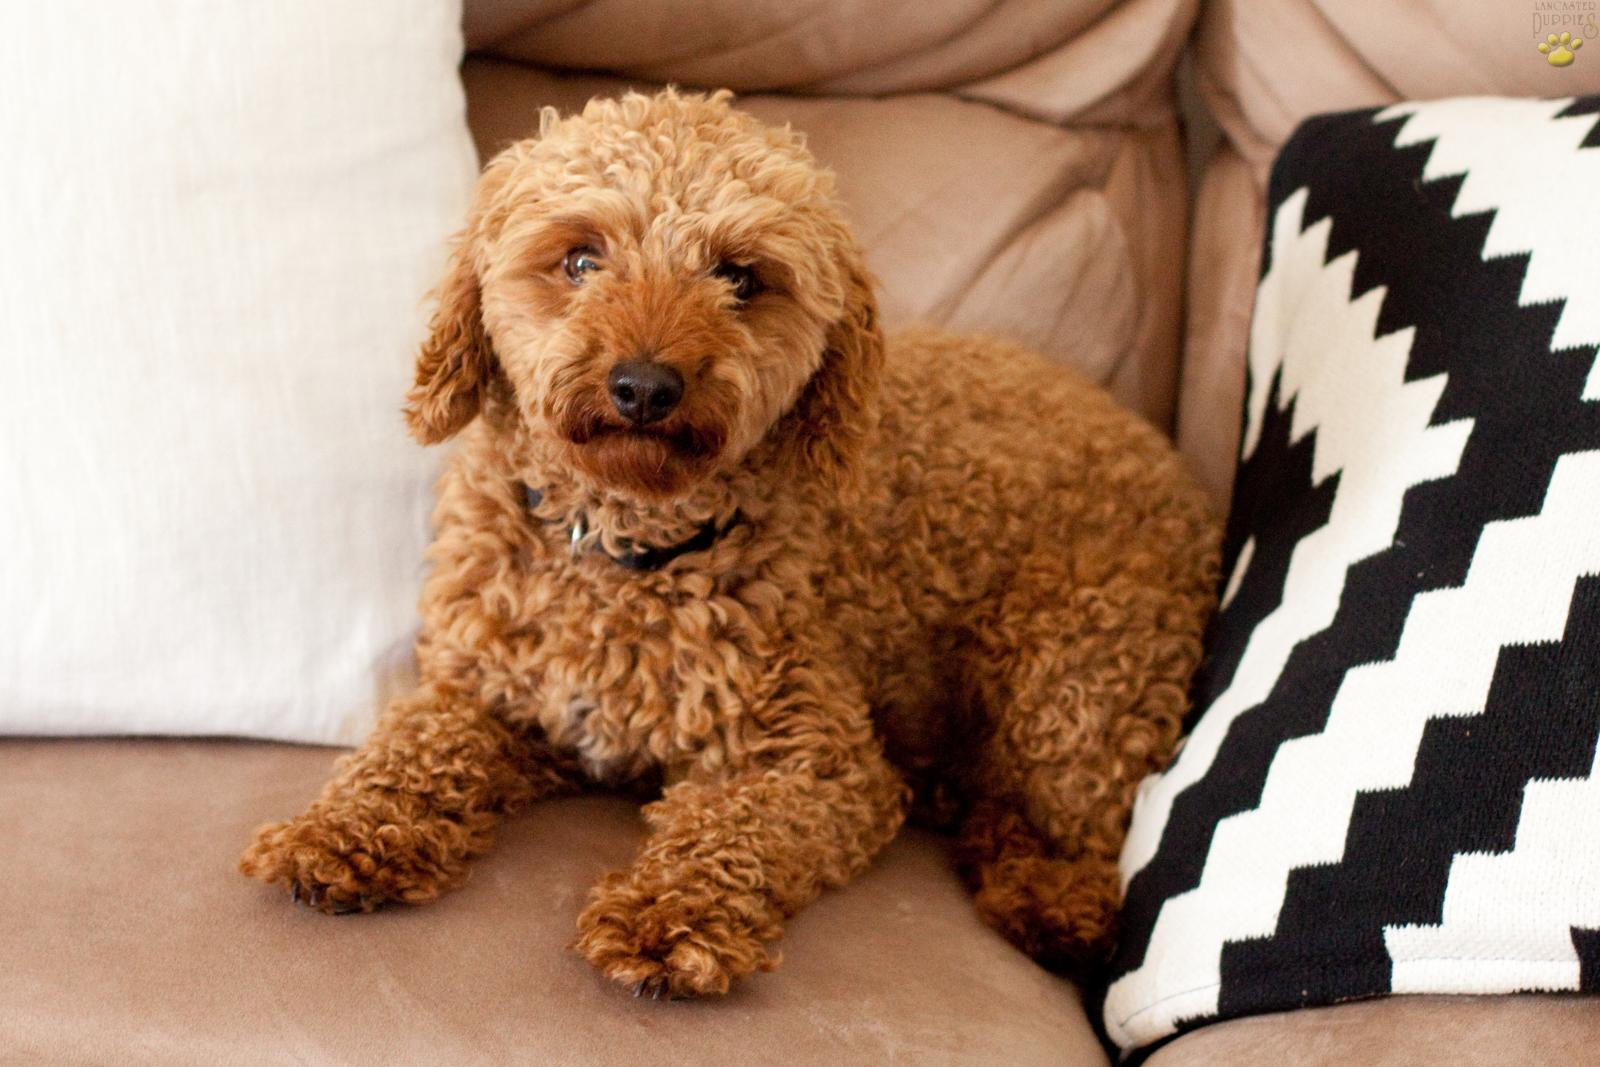 Lilly - Bichpoo Puppy for Sale in Denver, PA | Lancaster